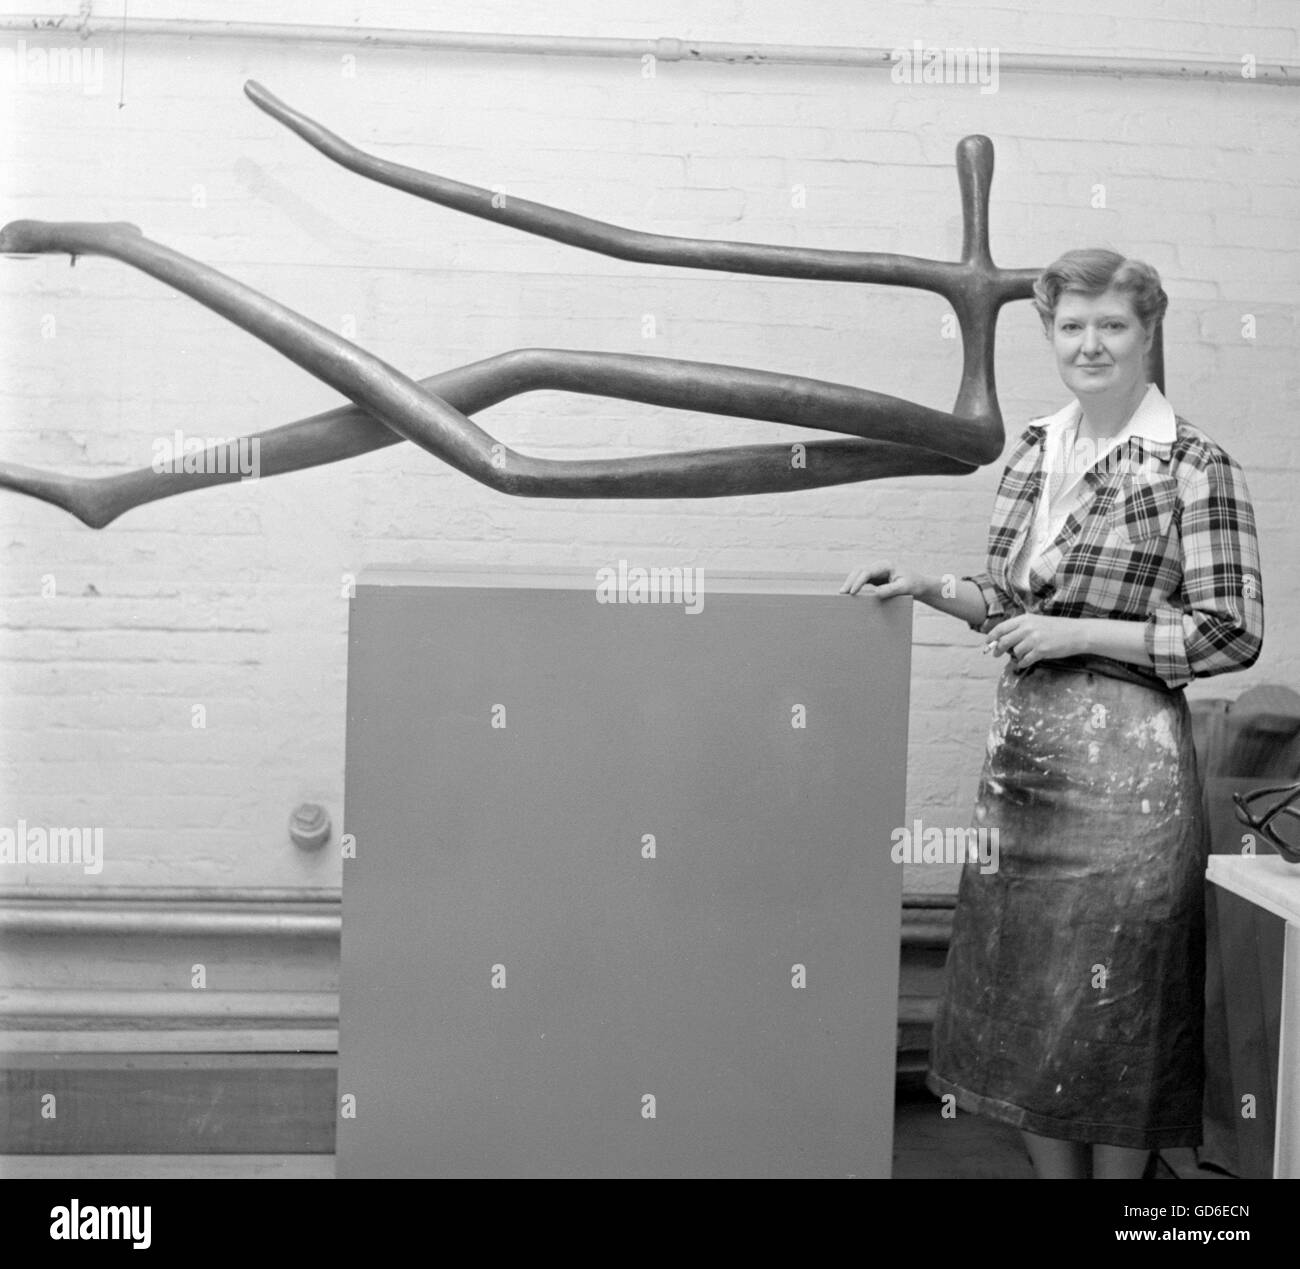 Mary Callery, sculptor, 1950. - Stock Image